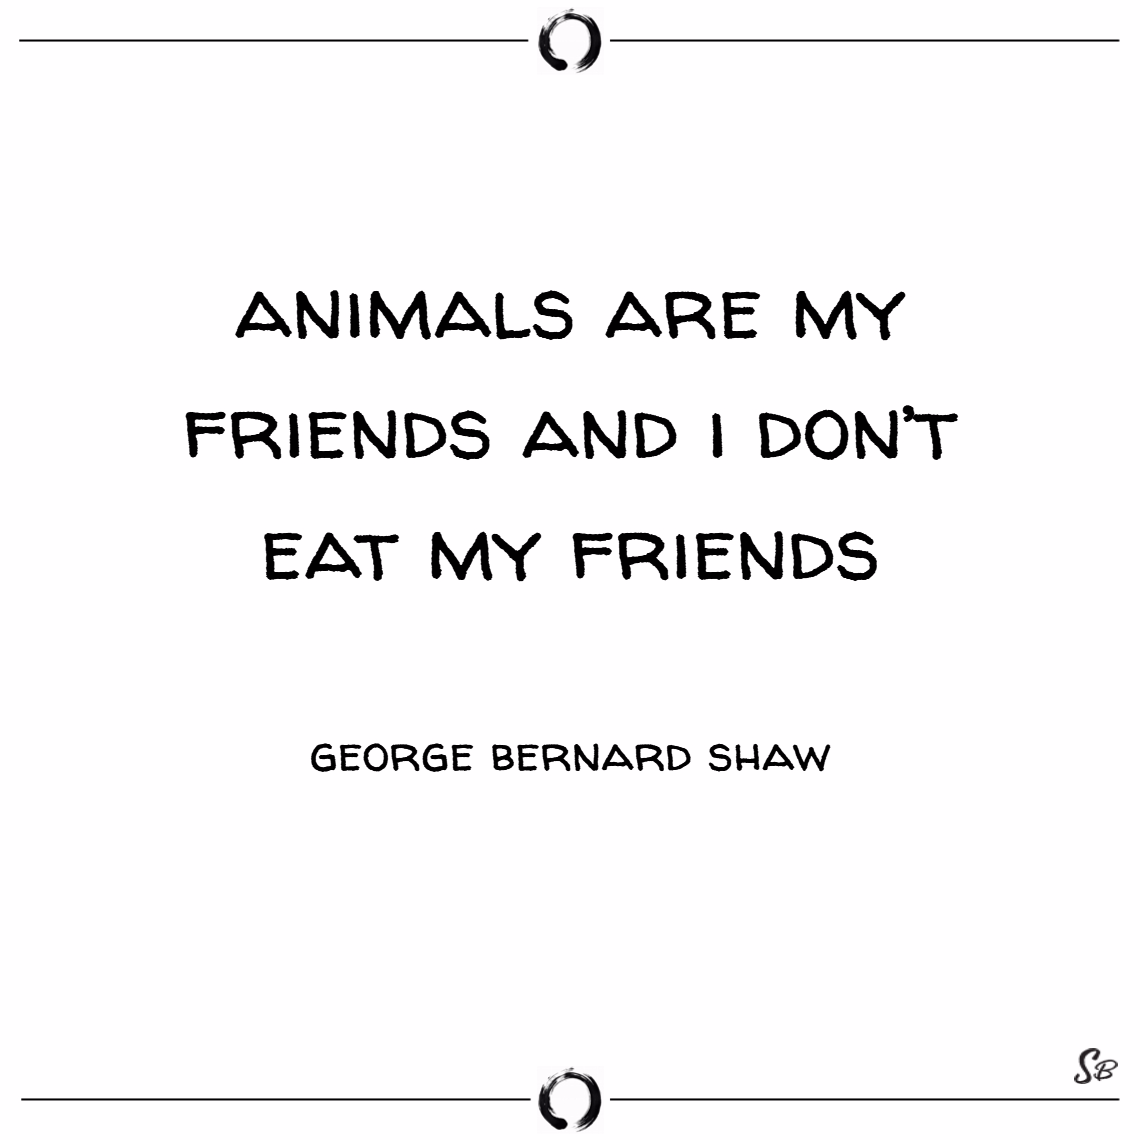 Animals are my friends and i don't eat my friends. – george bernard shaw